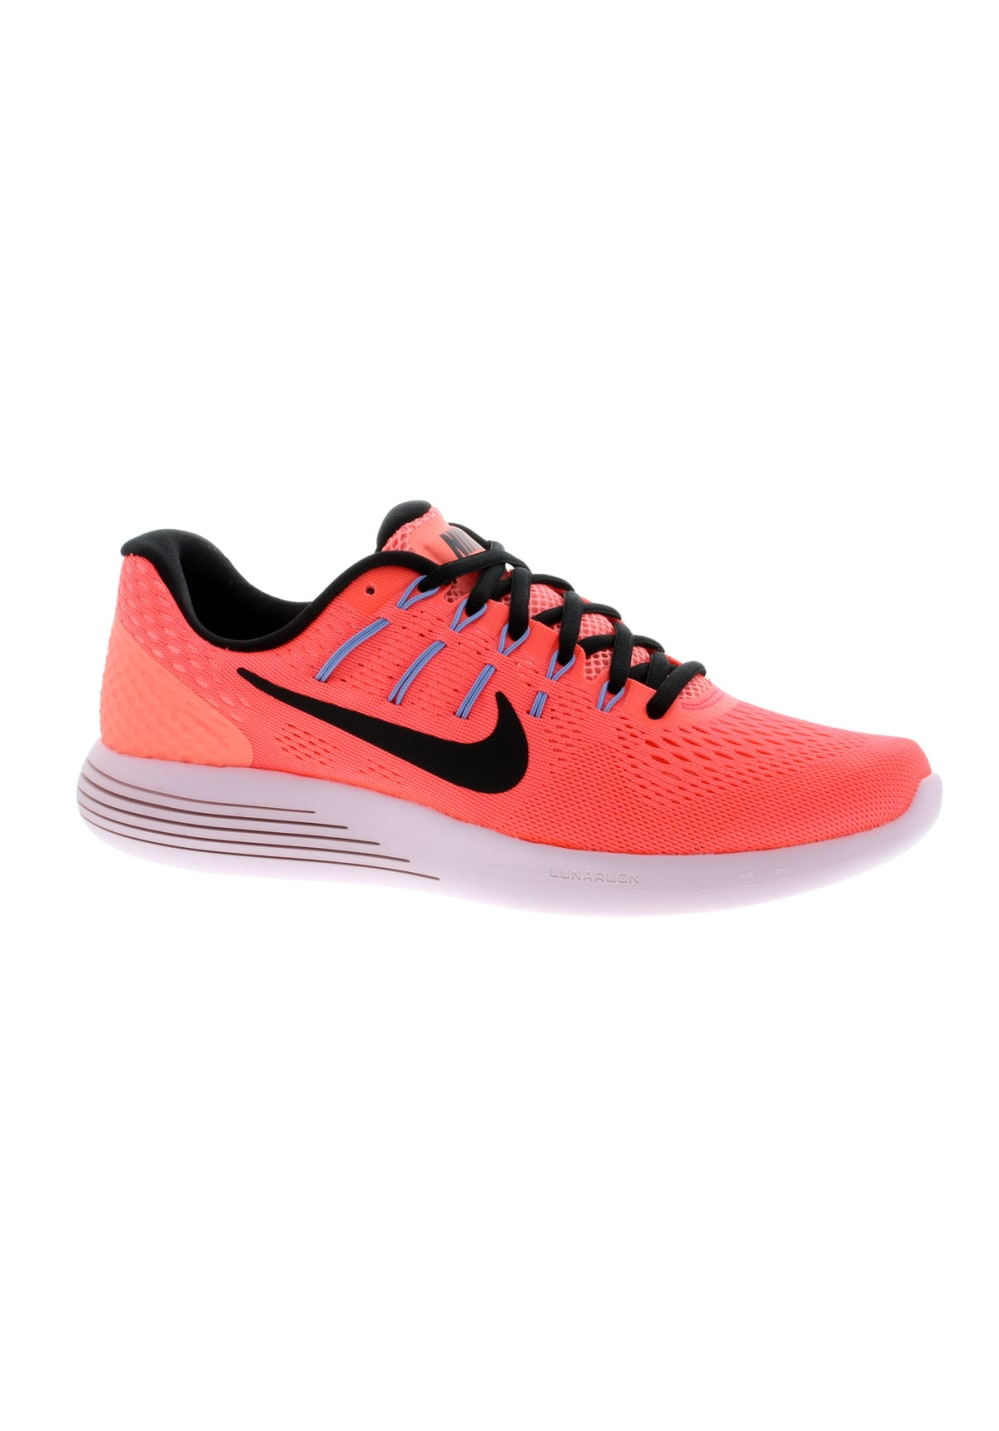 official photos a4c01 5d1b7 Next. Nike. Lunarglide 8 - Running shoes for Women